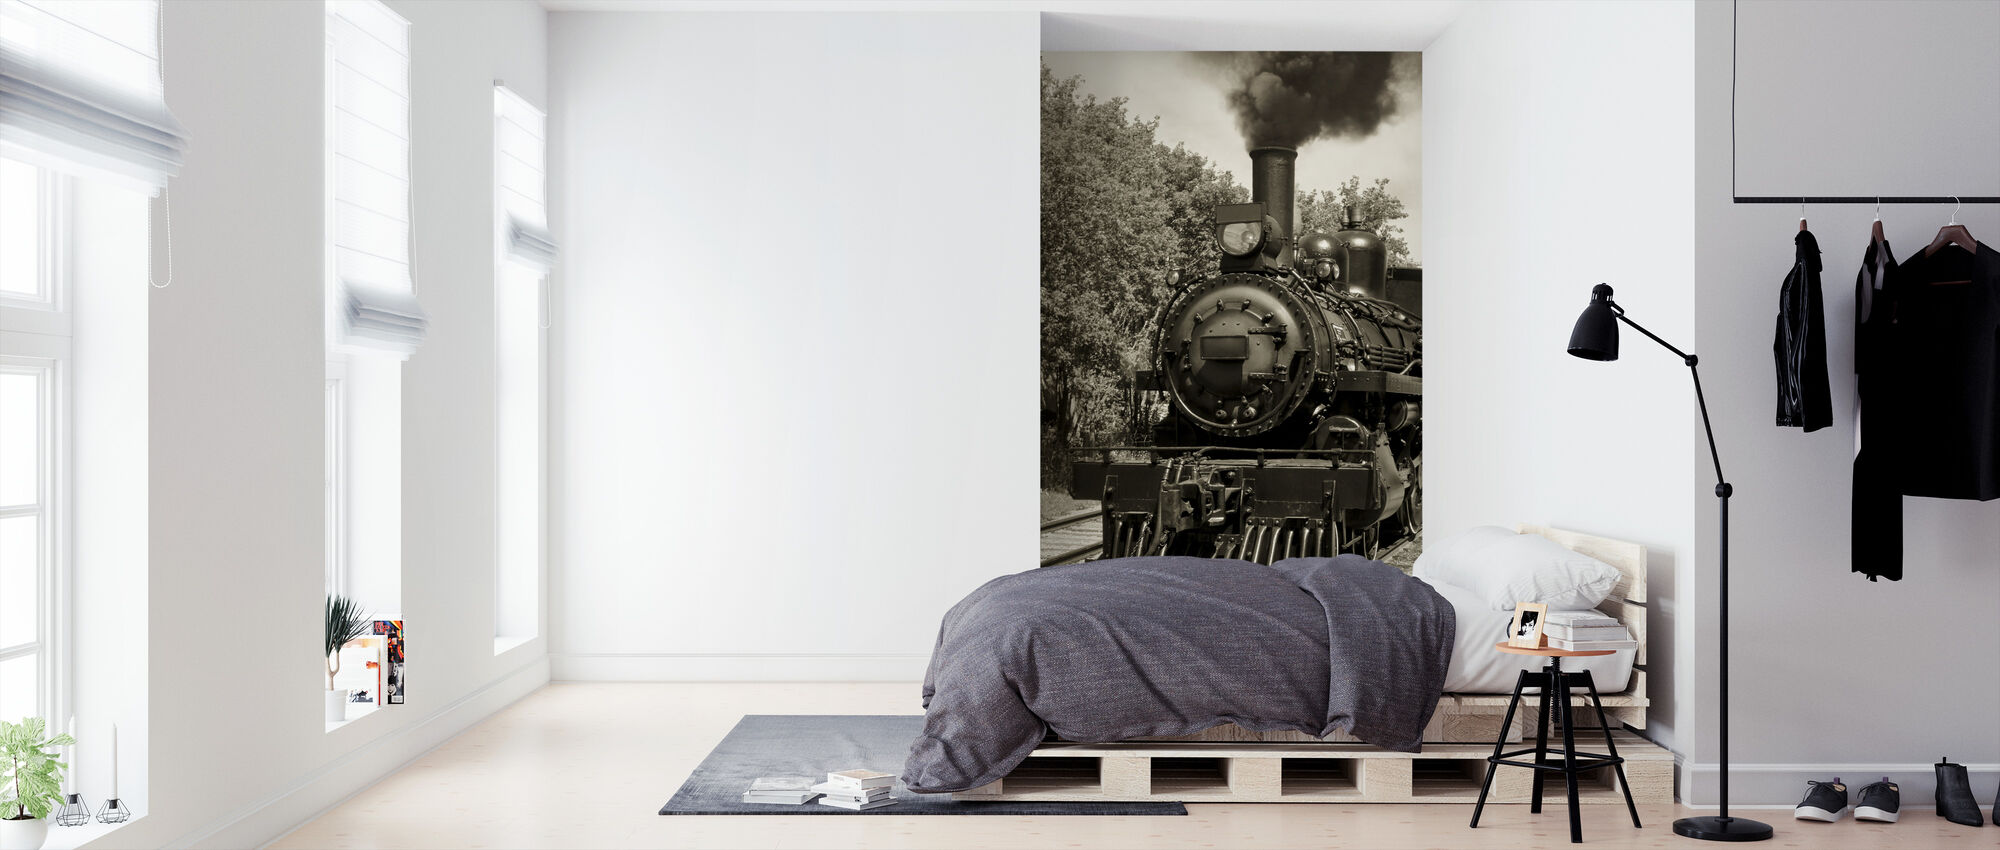 Old Locomotive - Sepia - Wallpaper - Bedroom